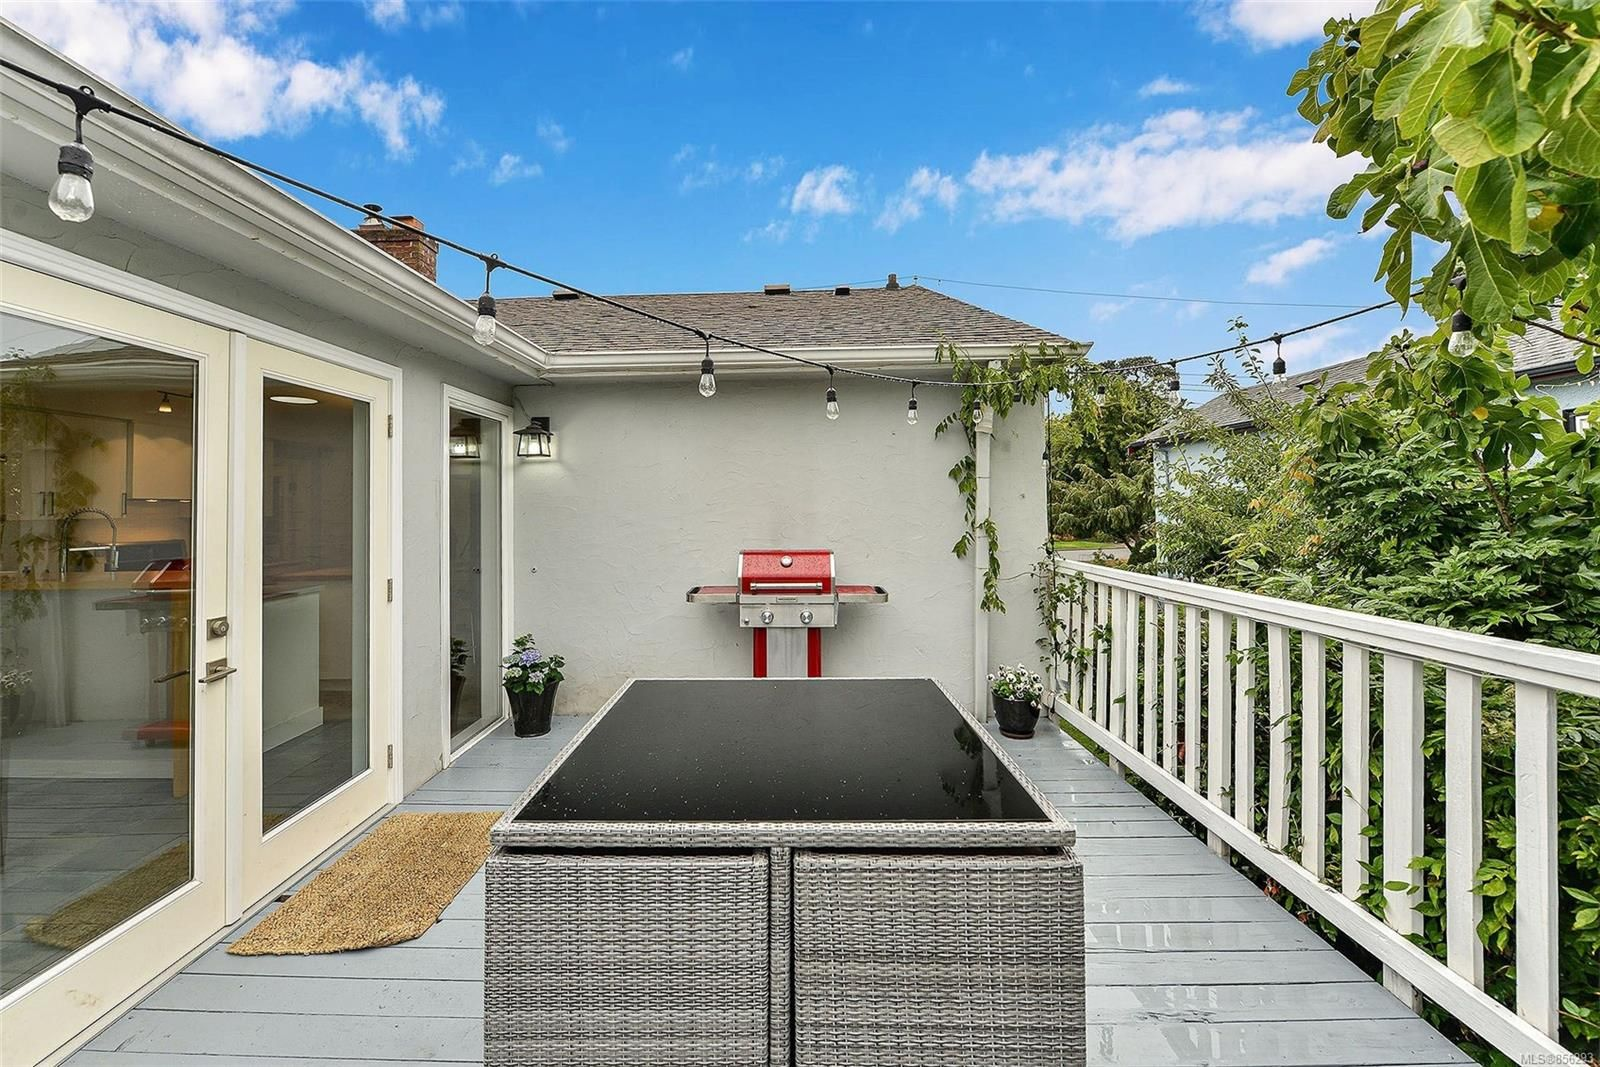 Photo 31: Photos: 1753 Armstrong Ave in : OB North Oak Bay House for sale (Oak Bay)  : MLS®# 856293